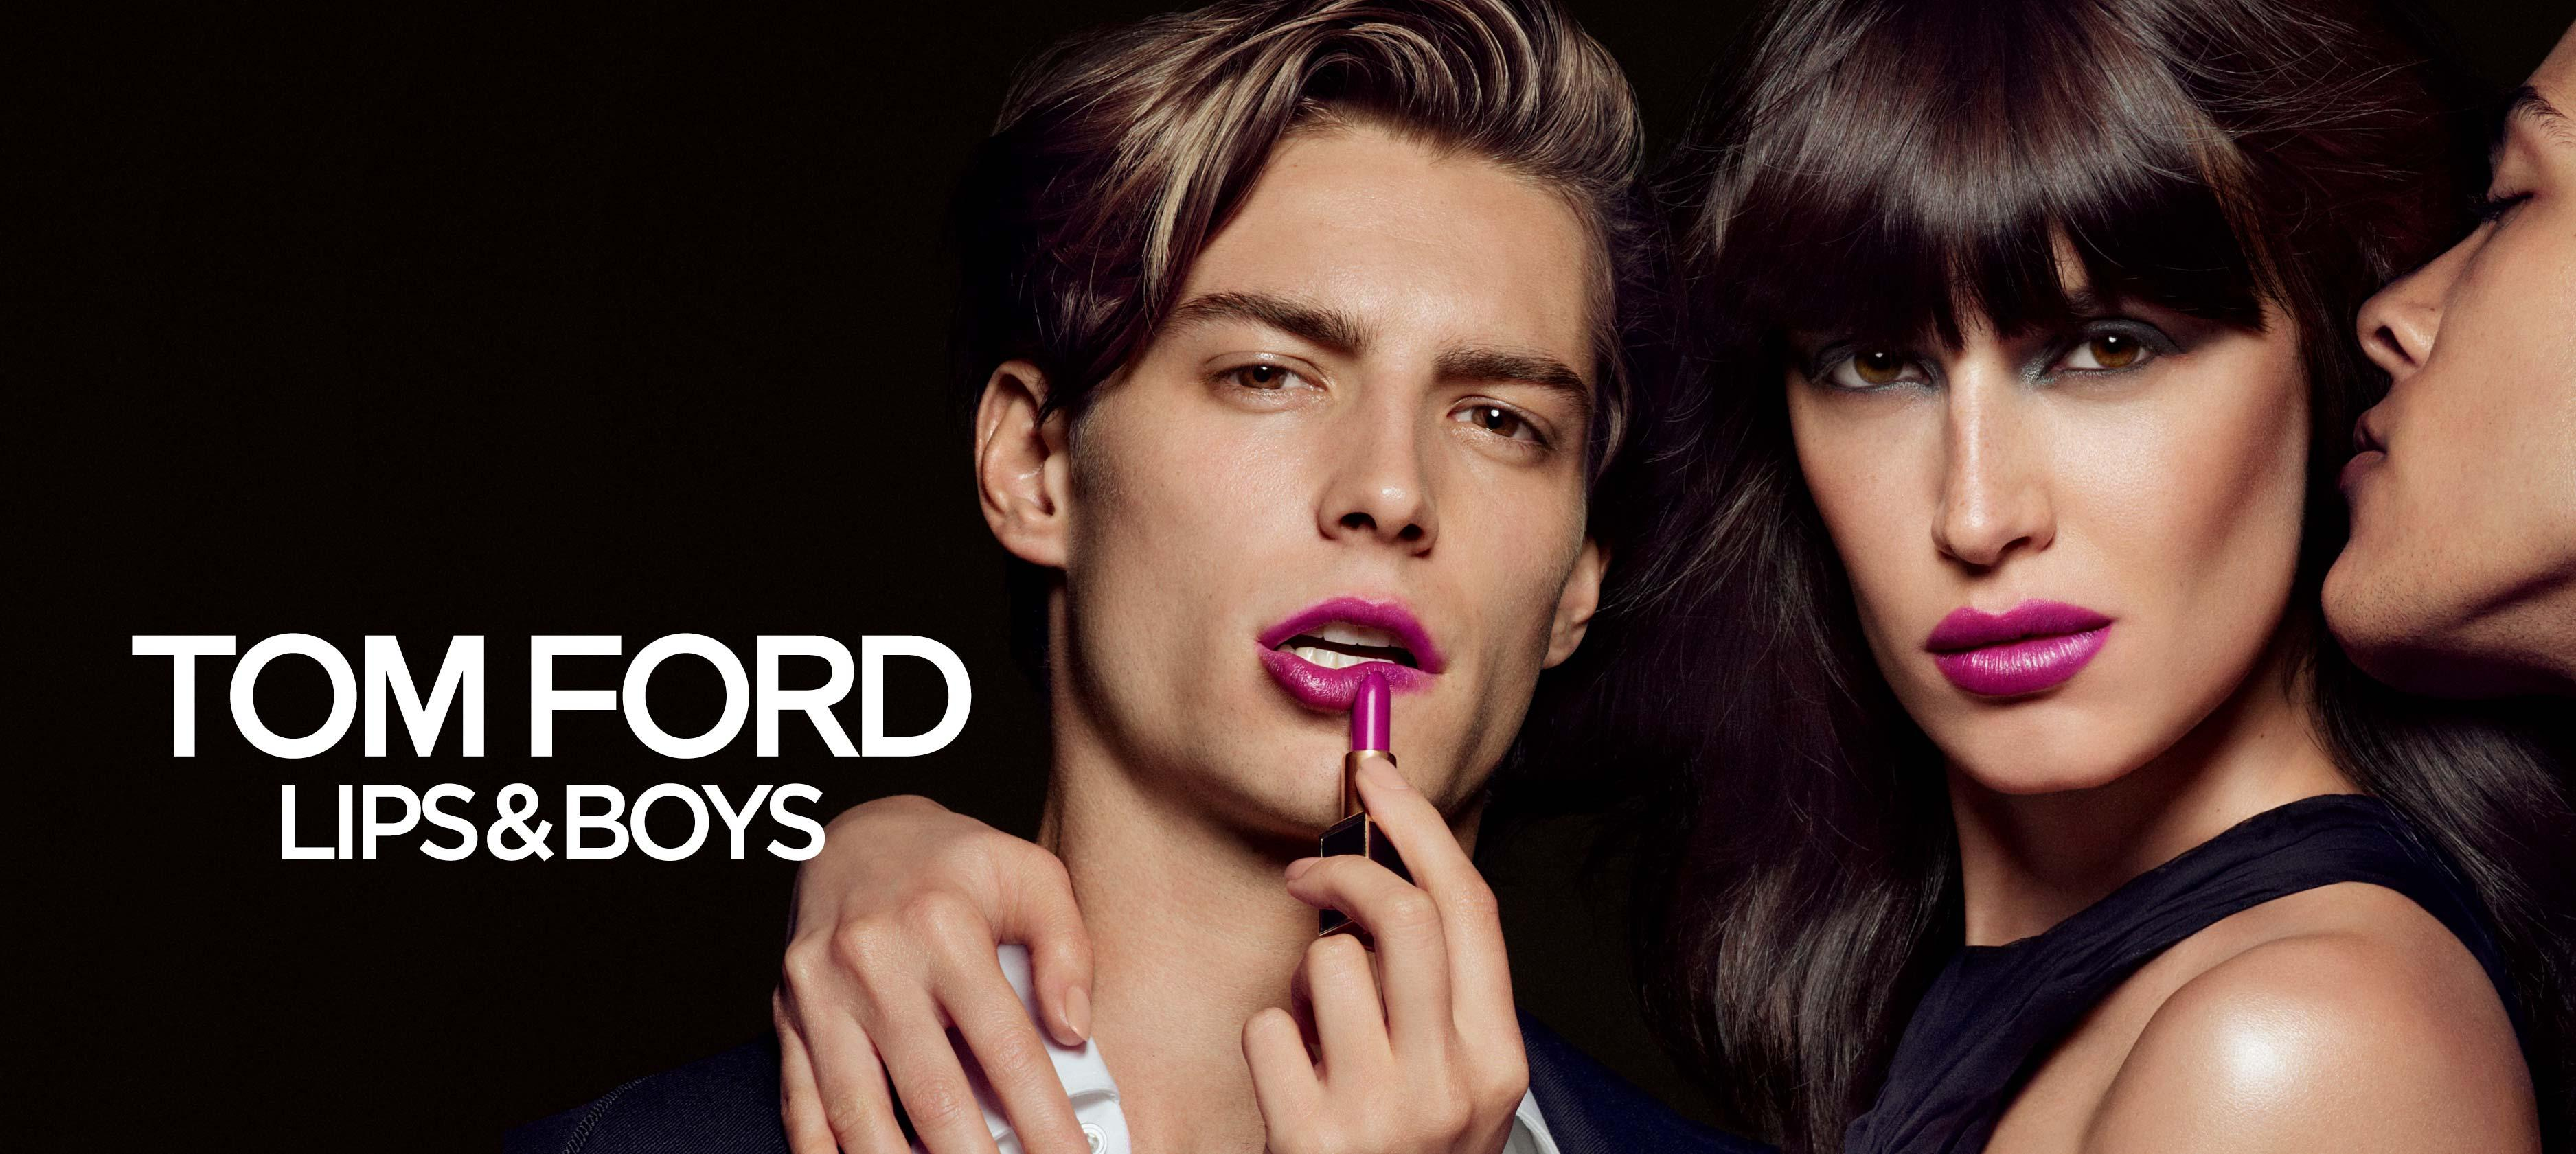 tom ford lips and boys copert kate on beauty